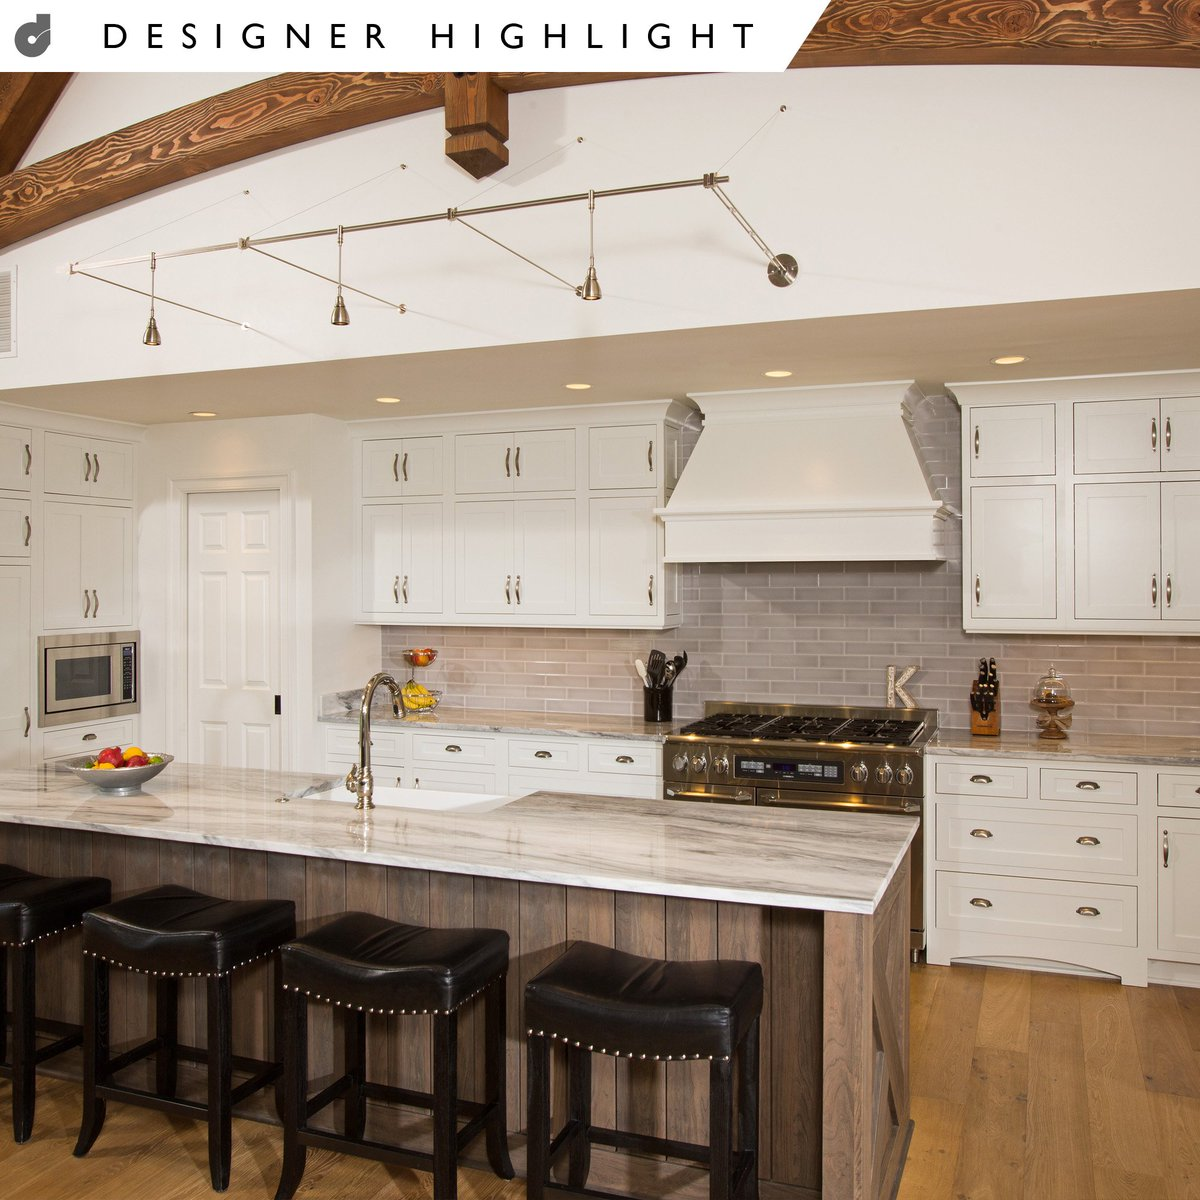 Dura Supreme Cabinetry On Twitter Designer Highlight Take A